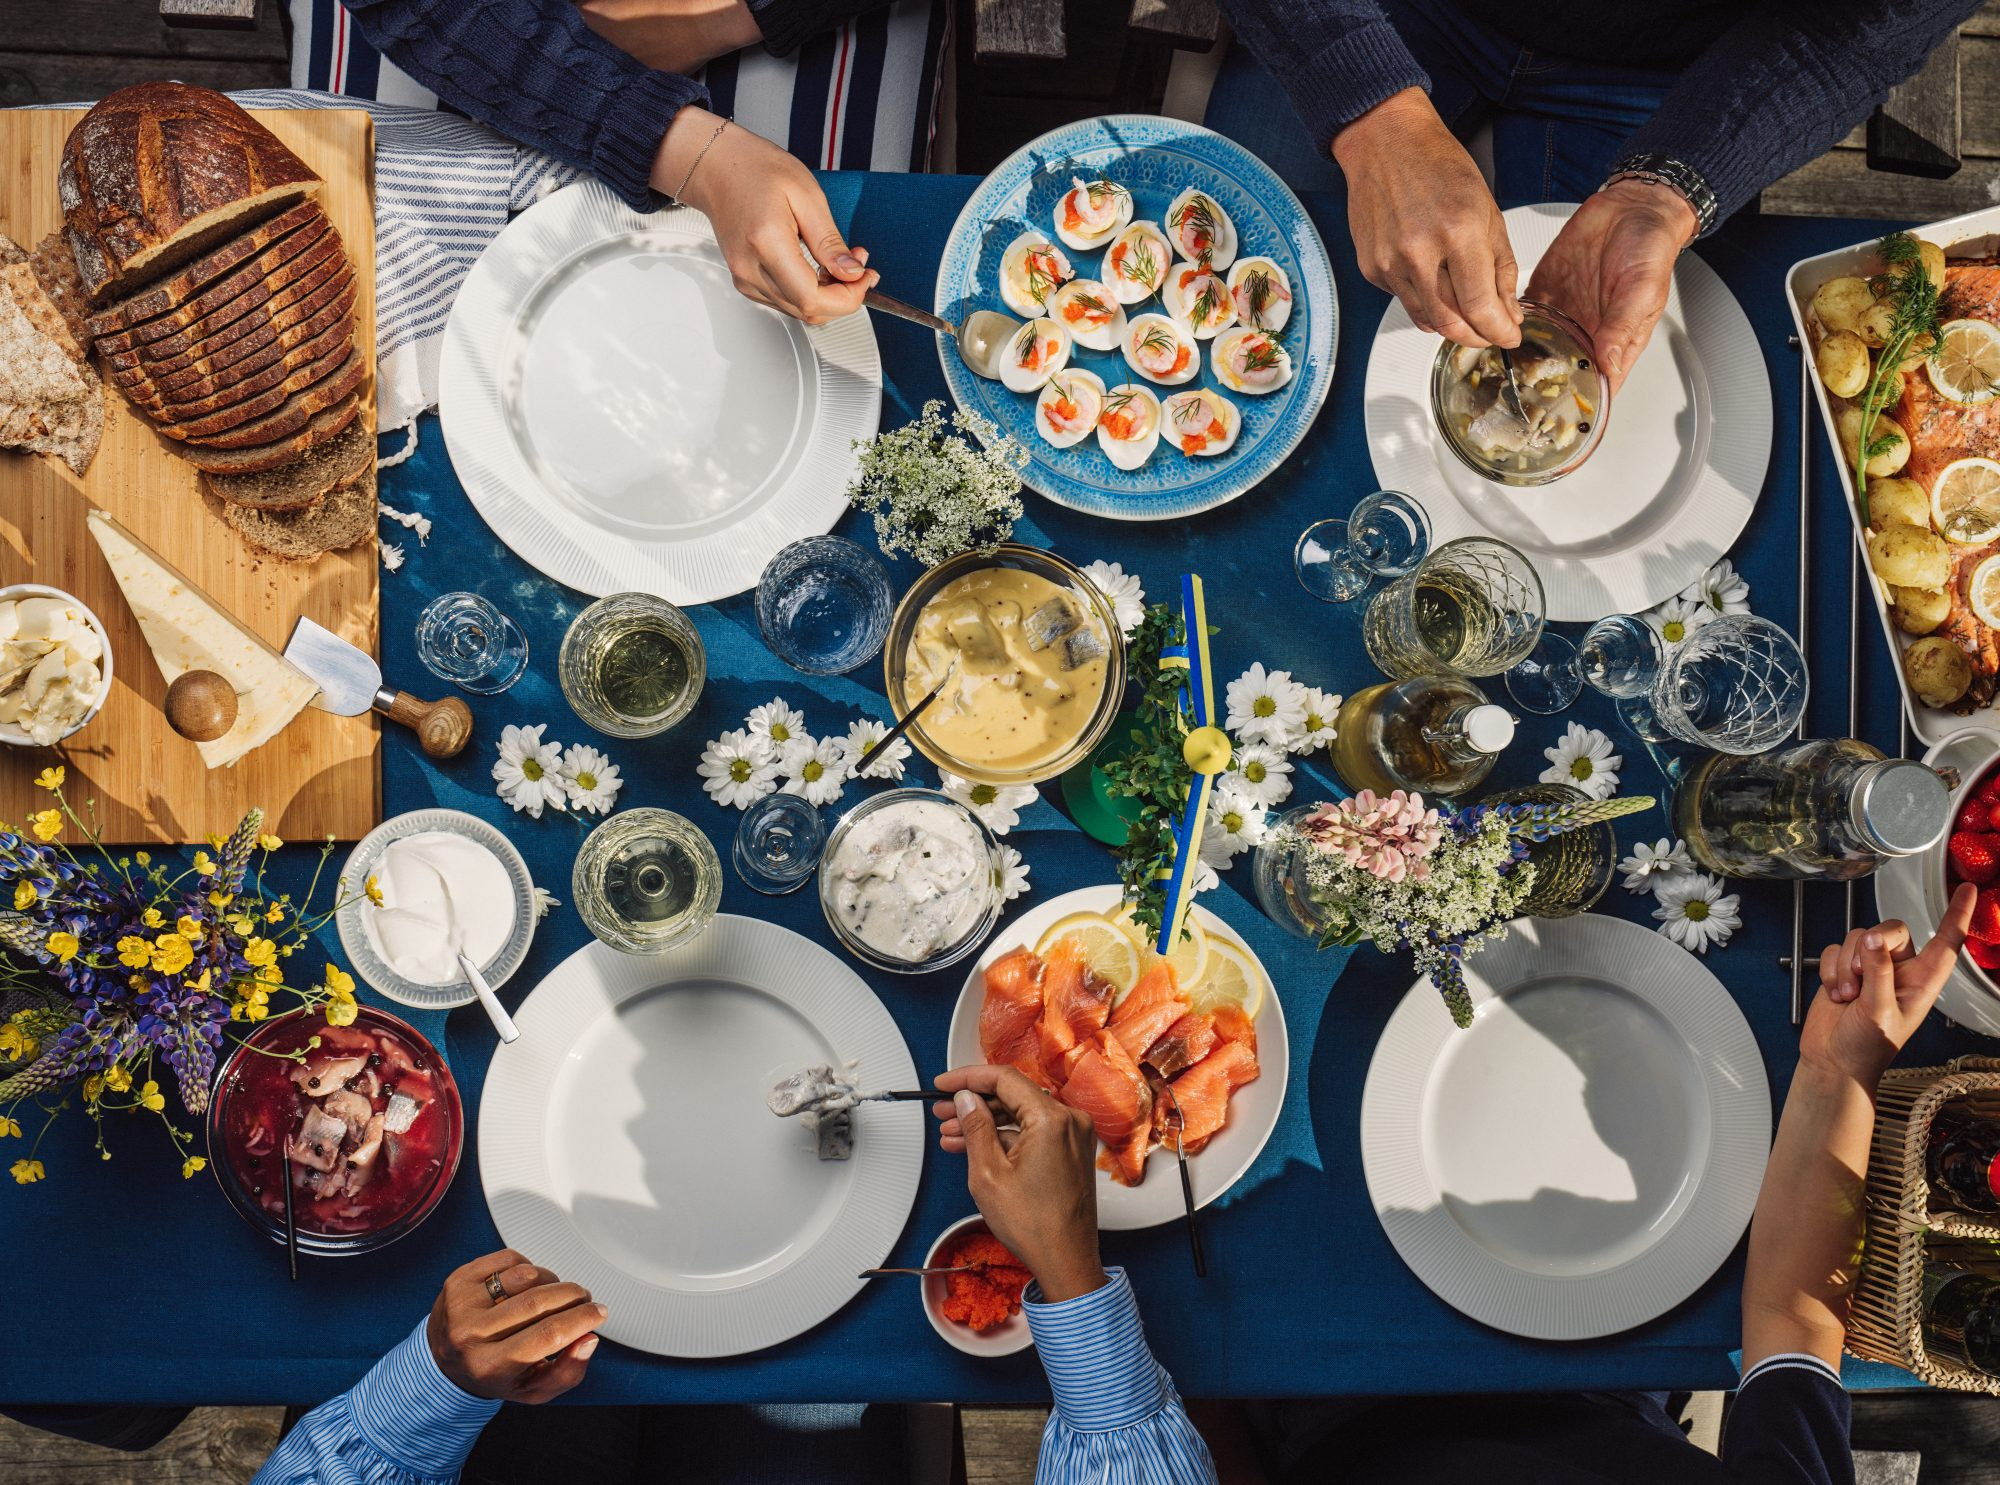 friends gathering around table outdoors